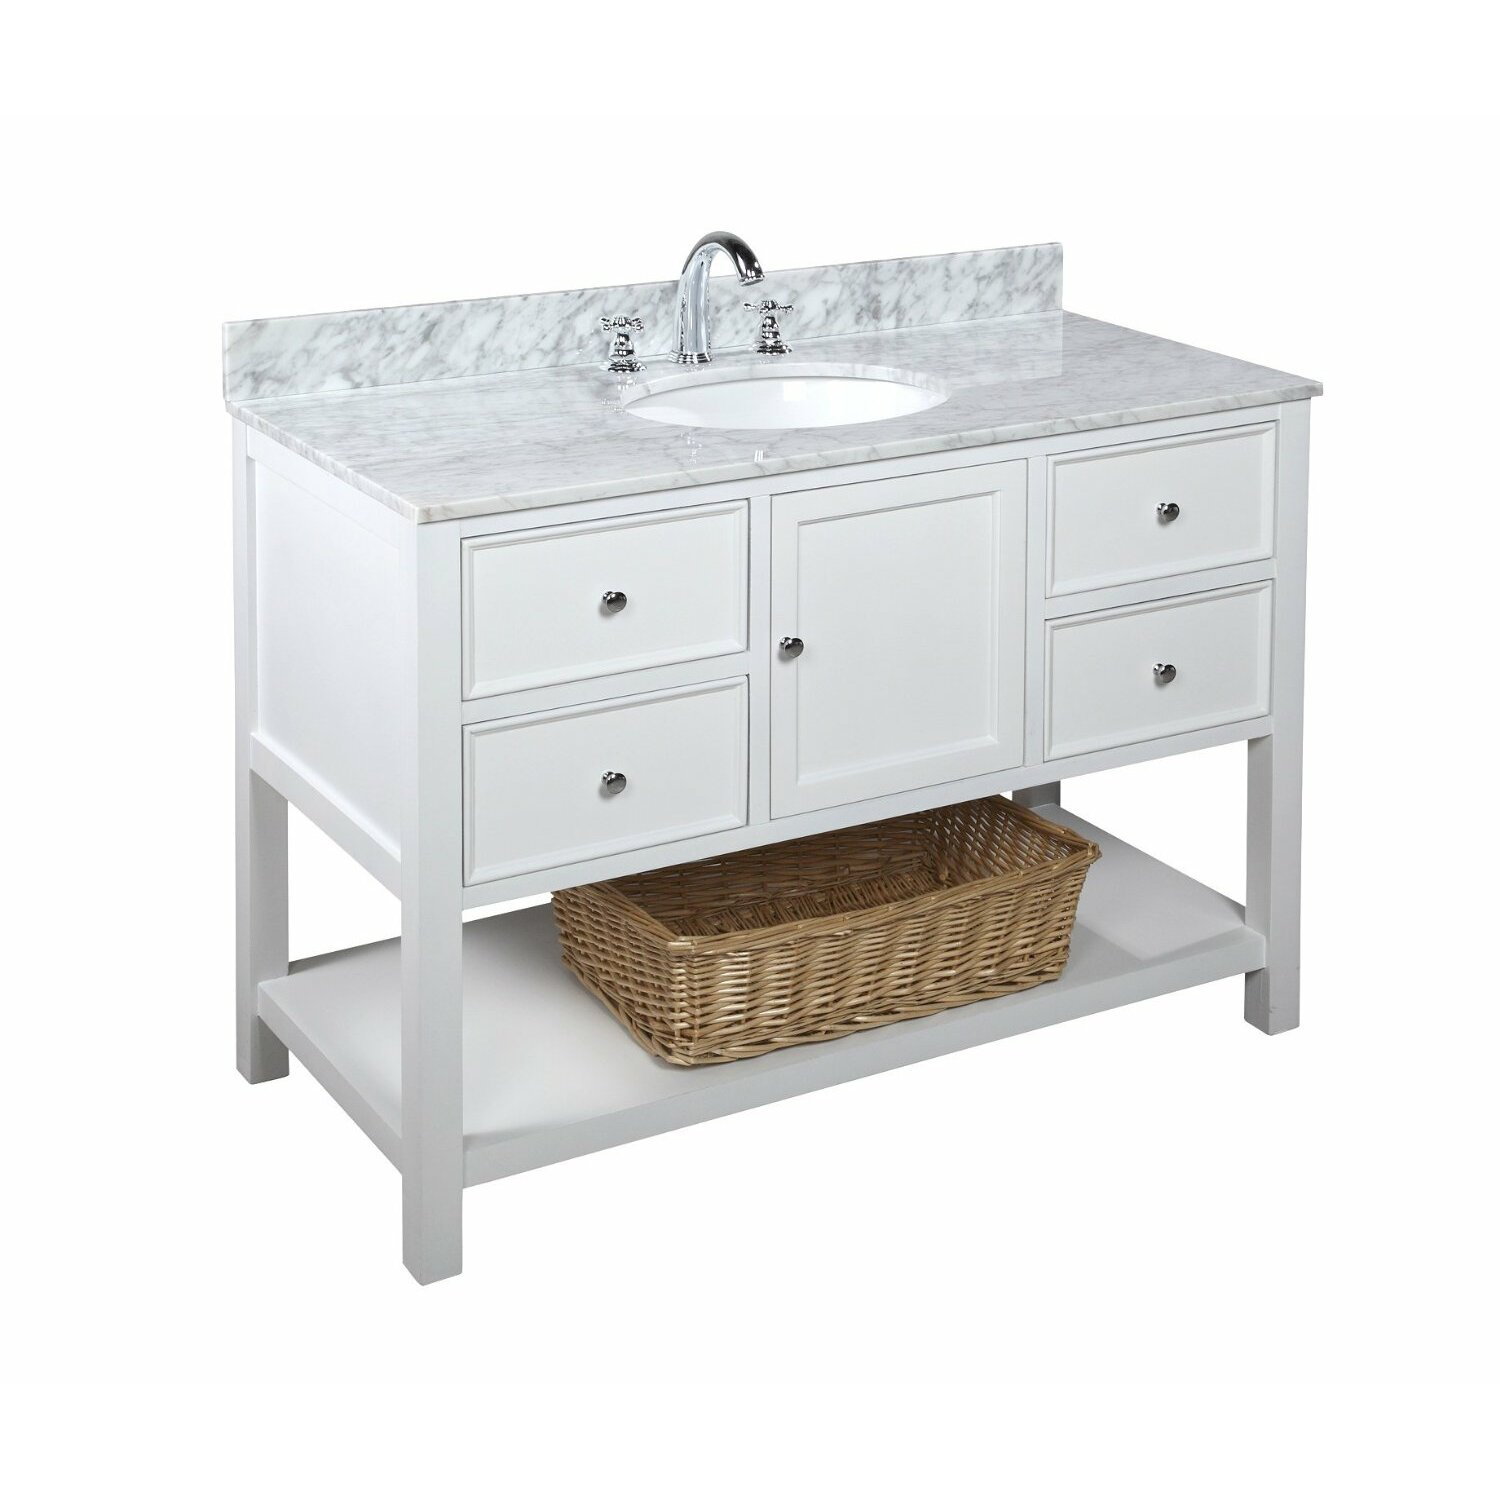 kbc new yorker 48 quot single bathroom vanity set amp reviews